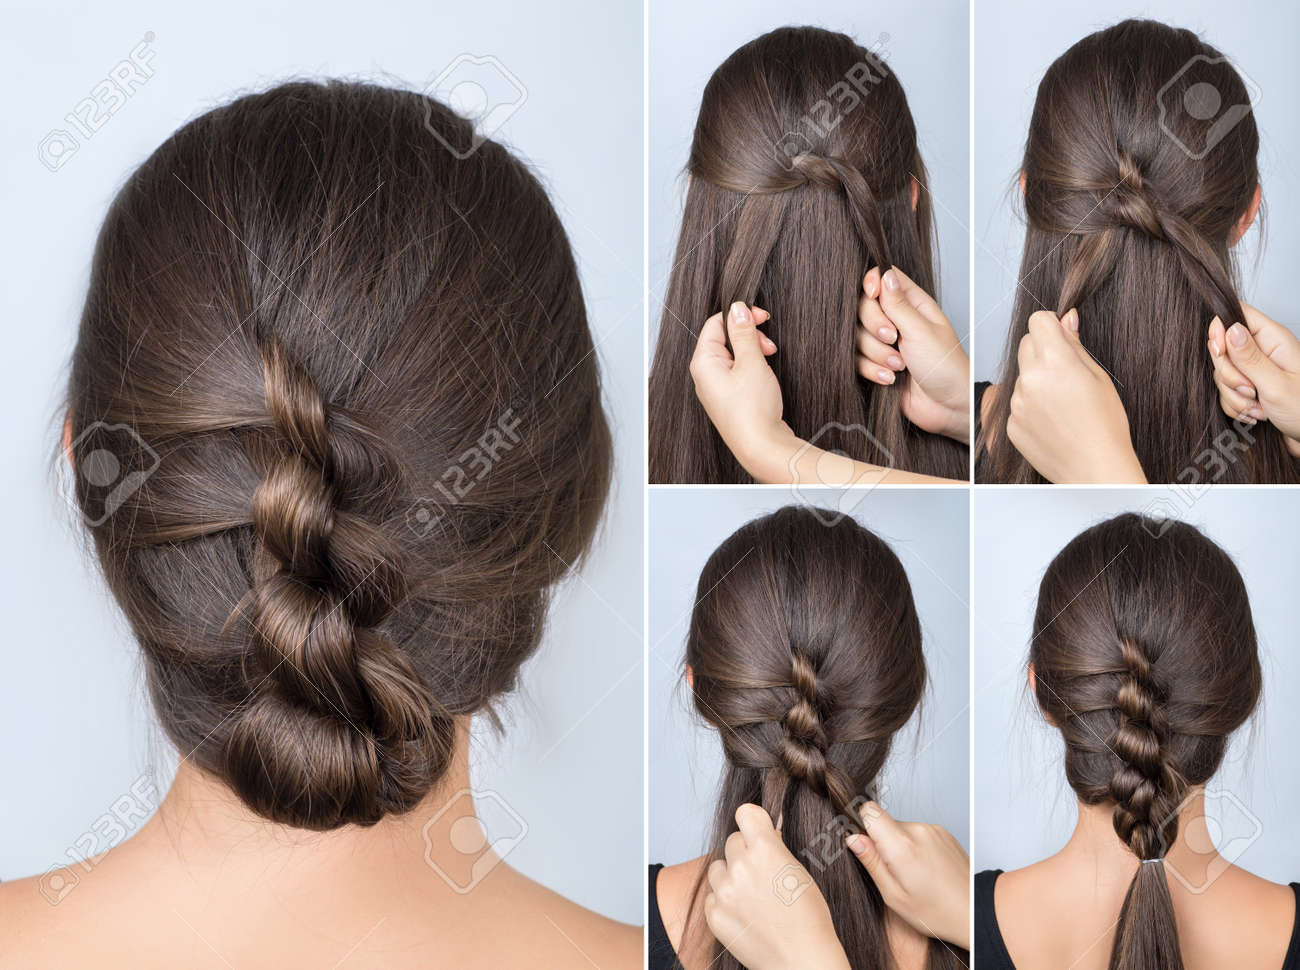 simple twisted hairstyle tutorial. easy hairstyle for long hair